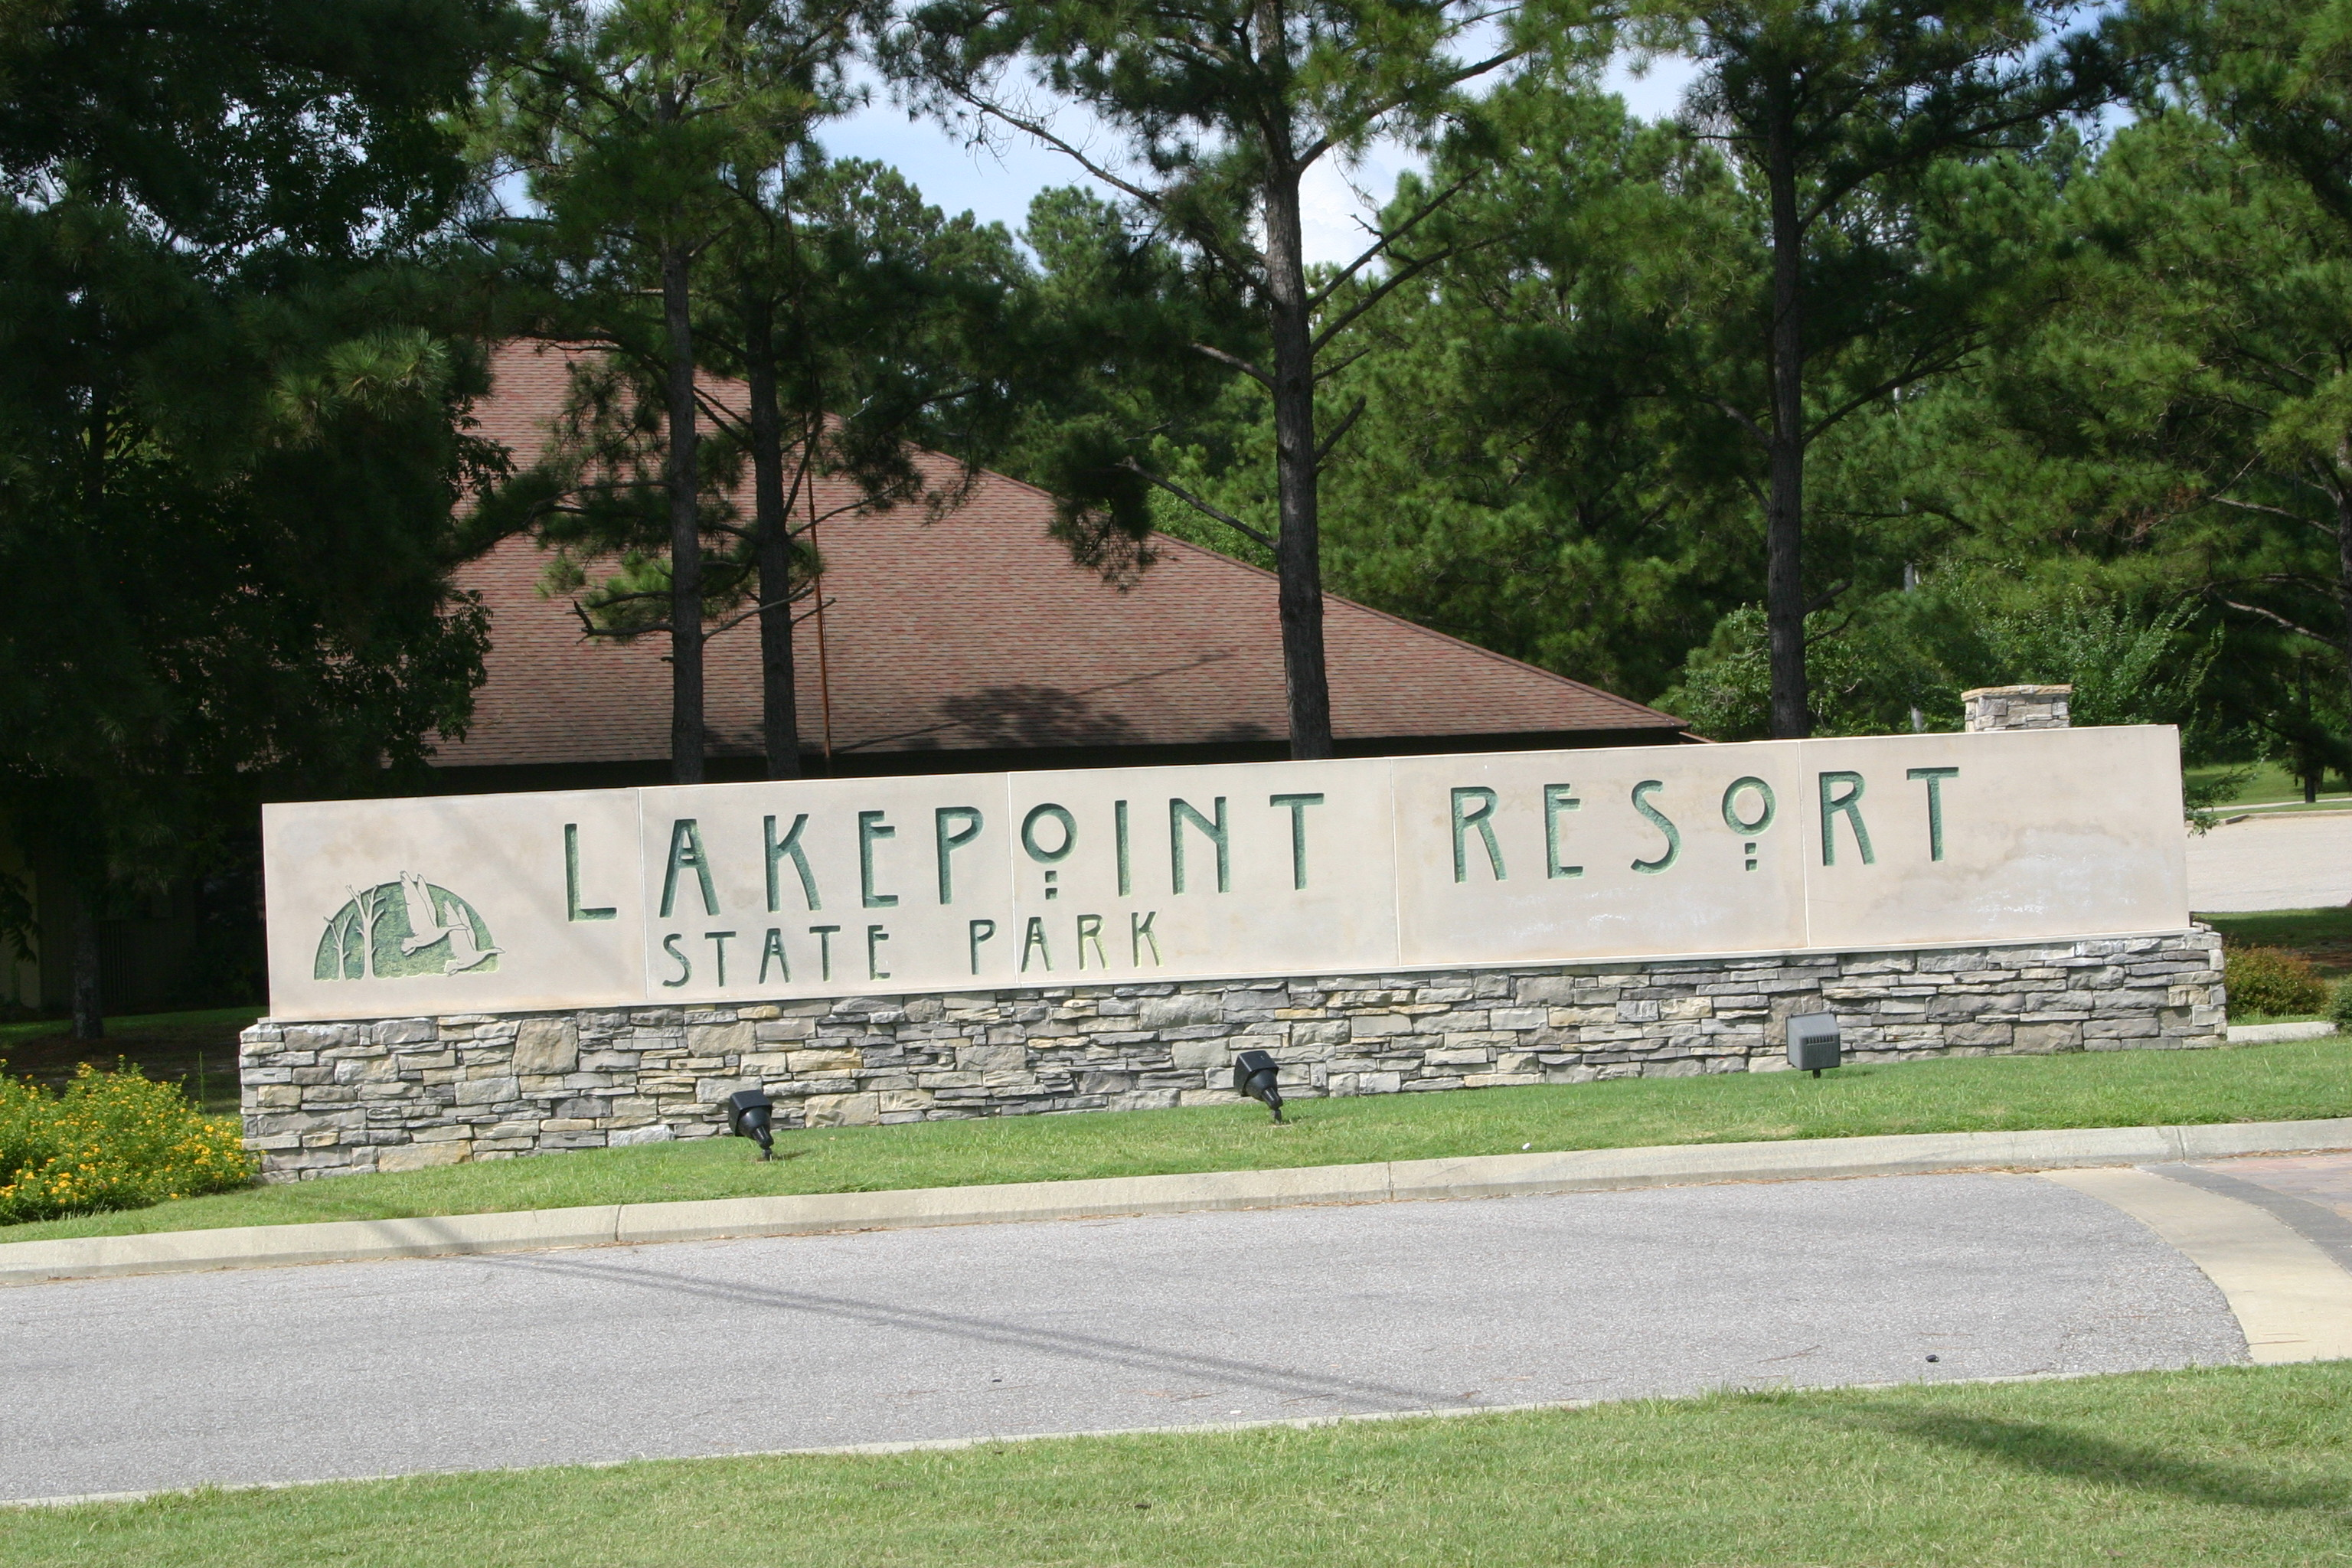 Lakepoint Resort State Park